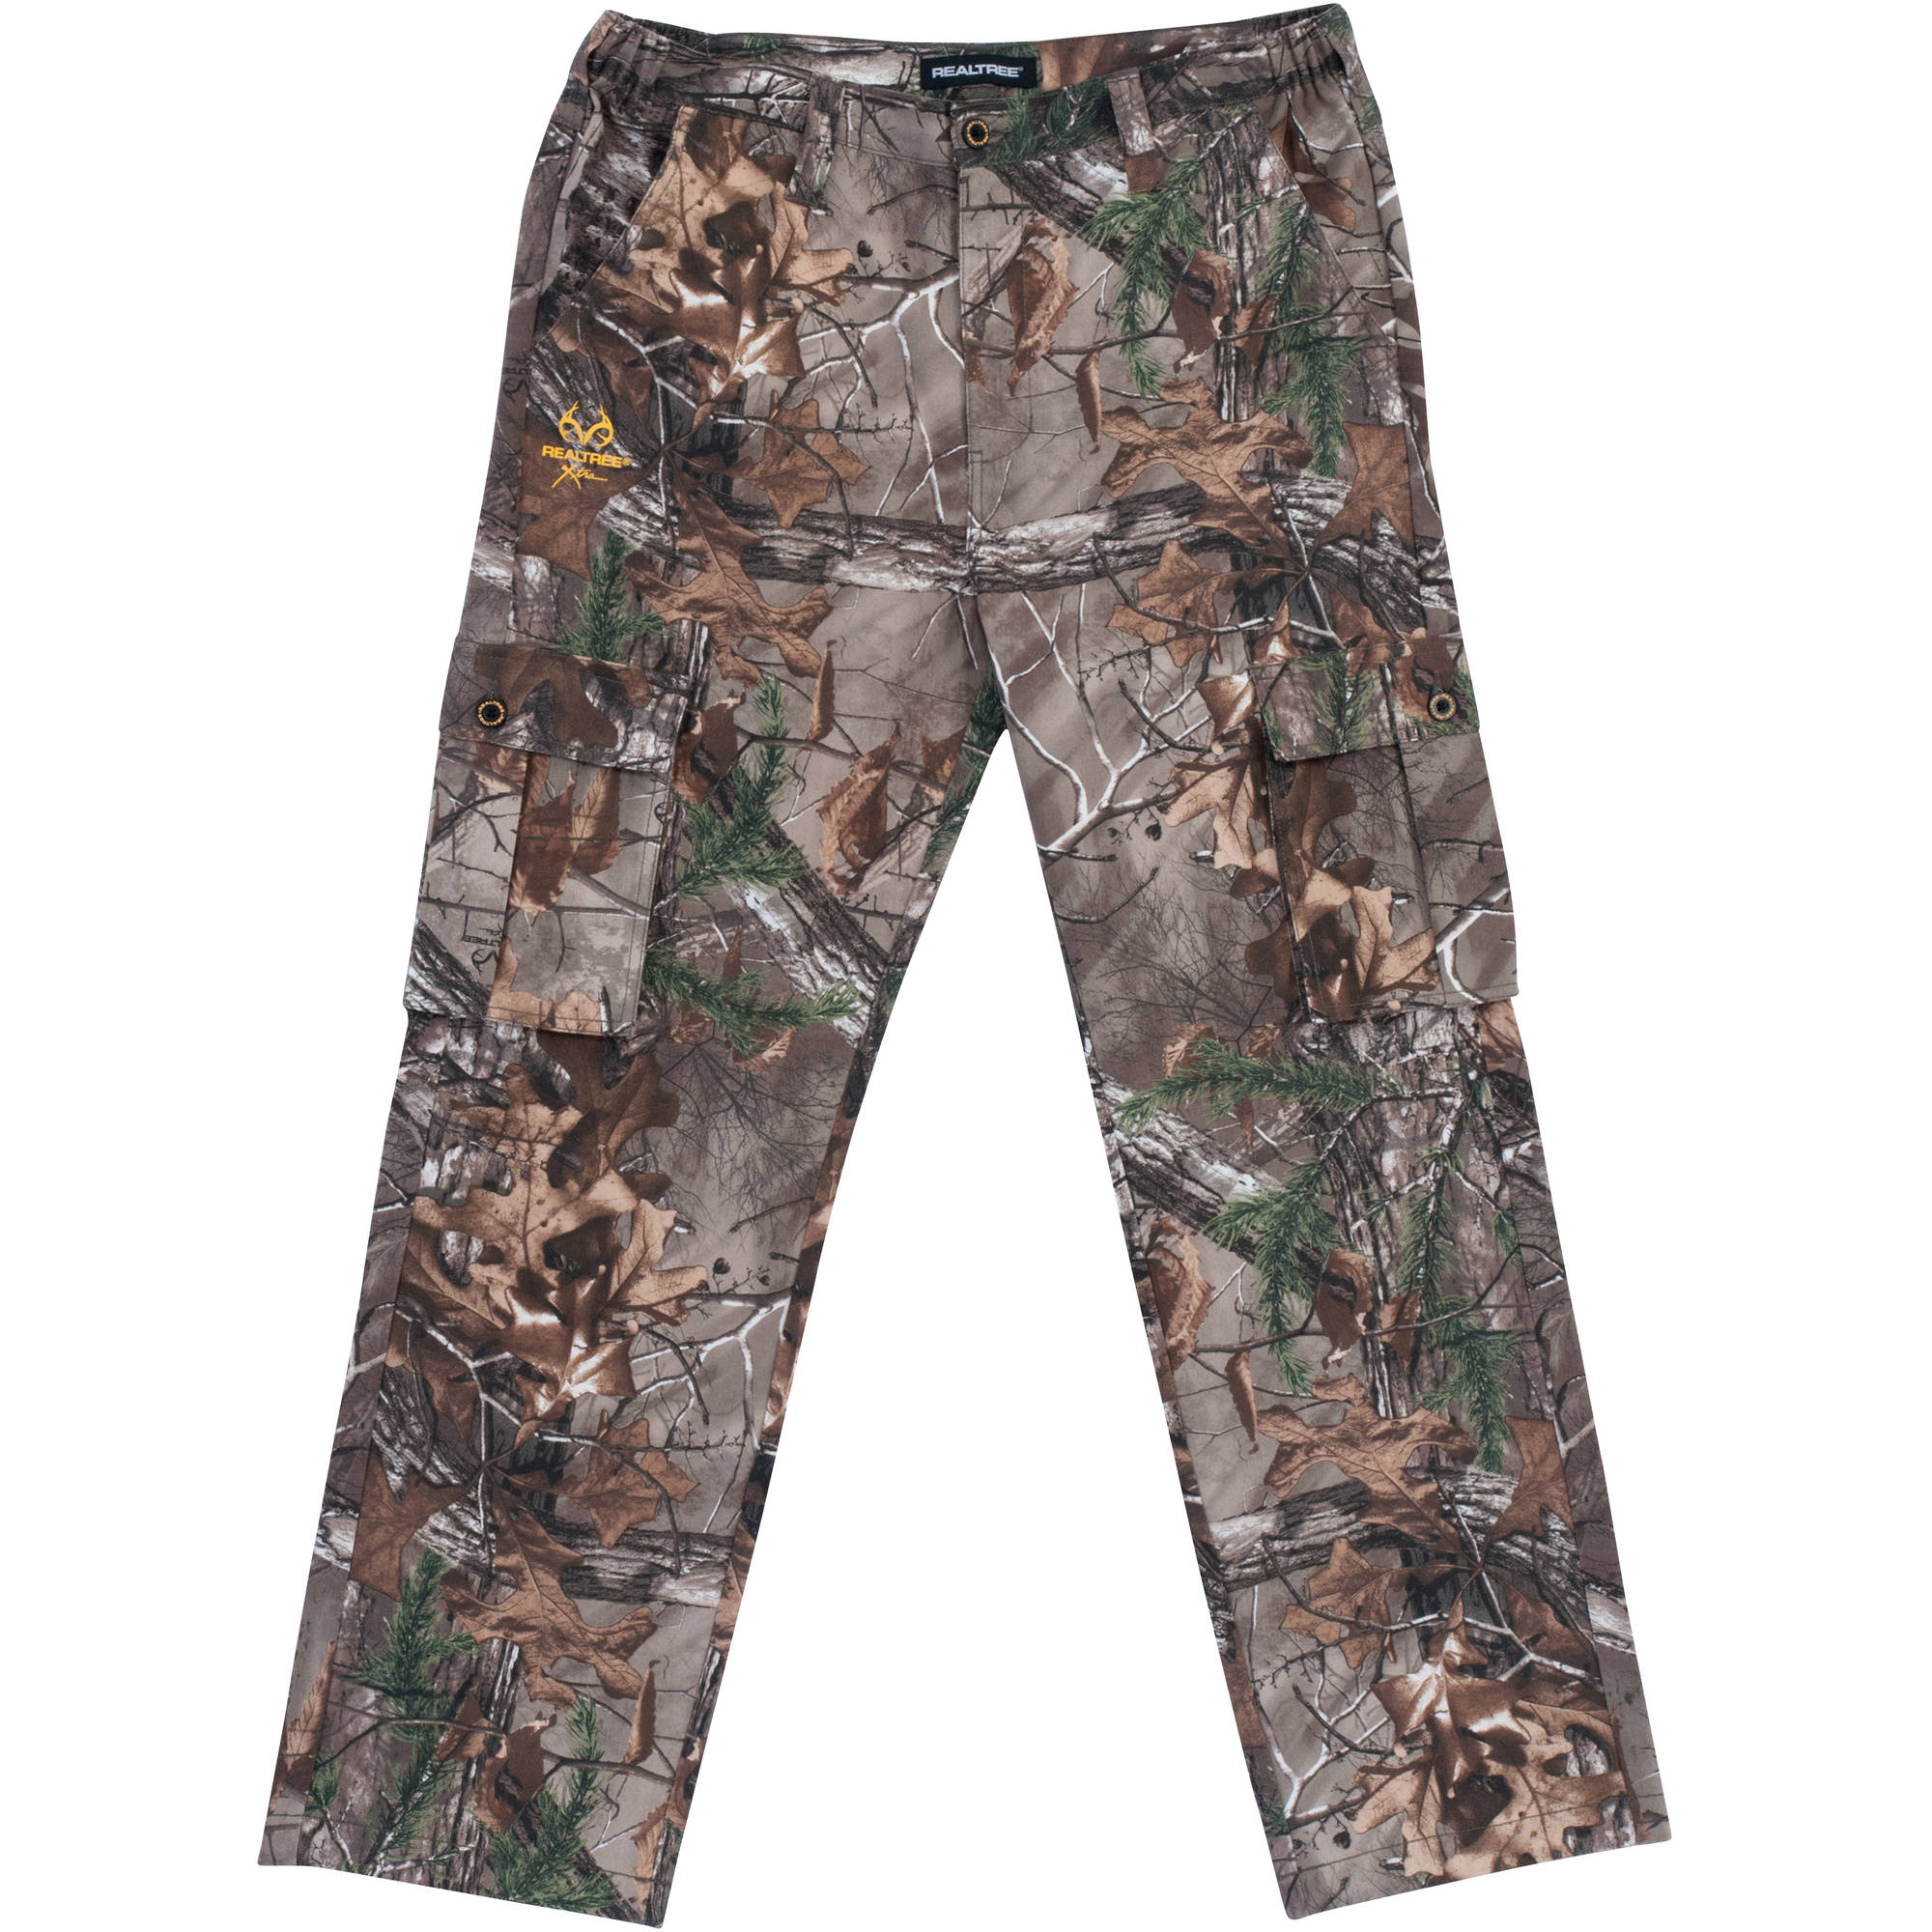 Men's Cargo Pants, Available in Realtree and Mossy Oak